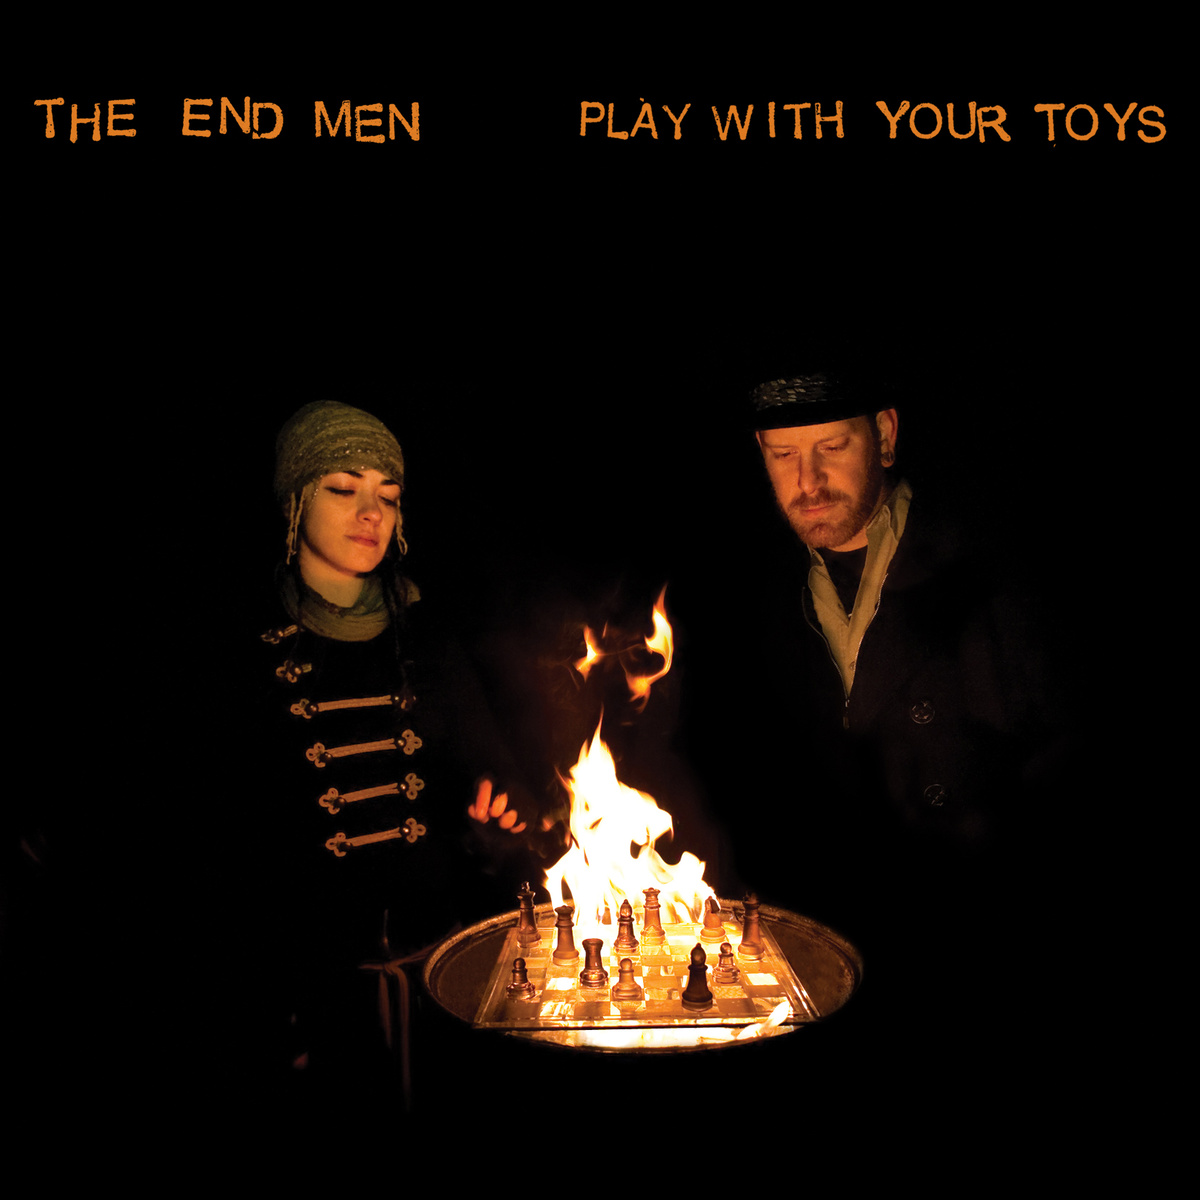 The End Men Play With Your Toys cover